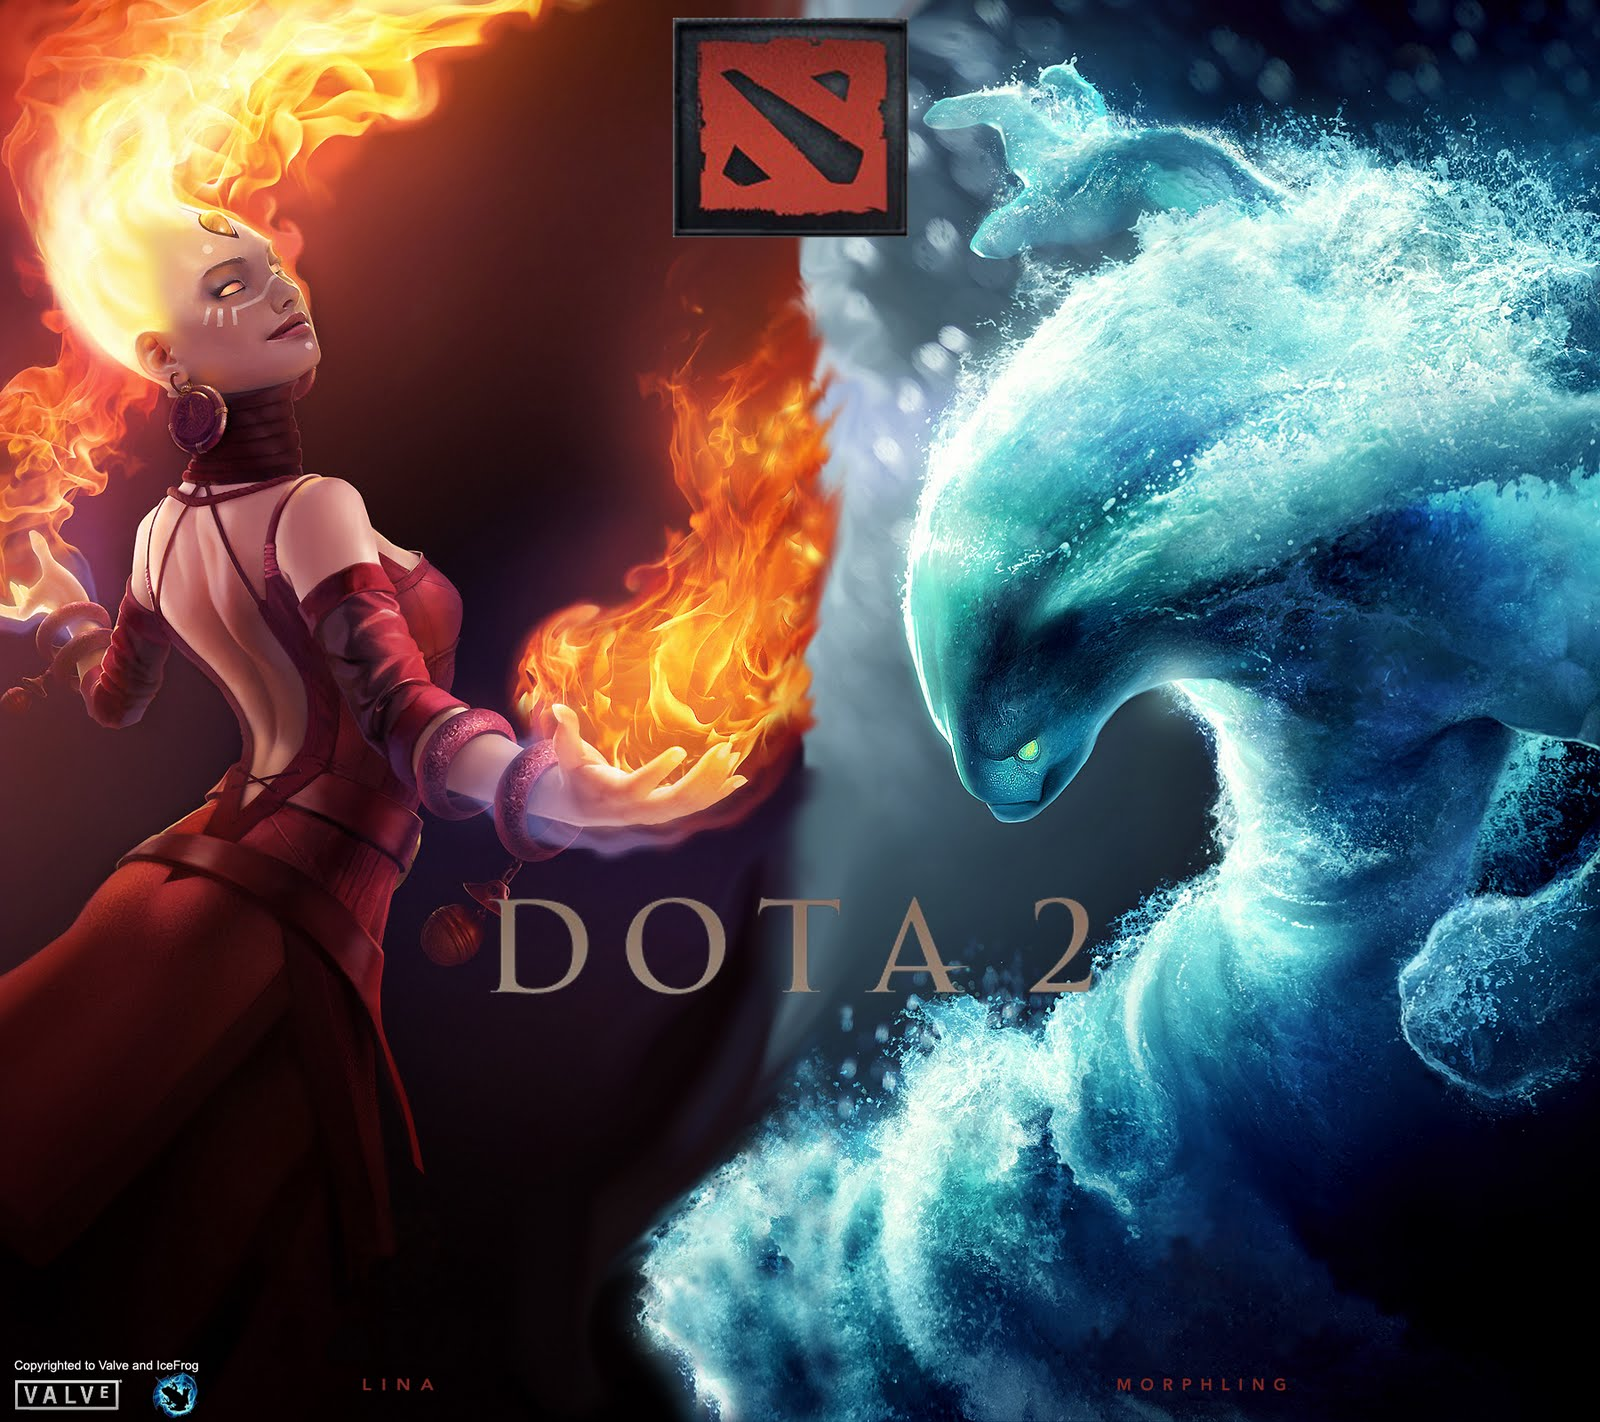 14 World Of Warcraft DOTA 2 Wallpapers HD Download